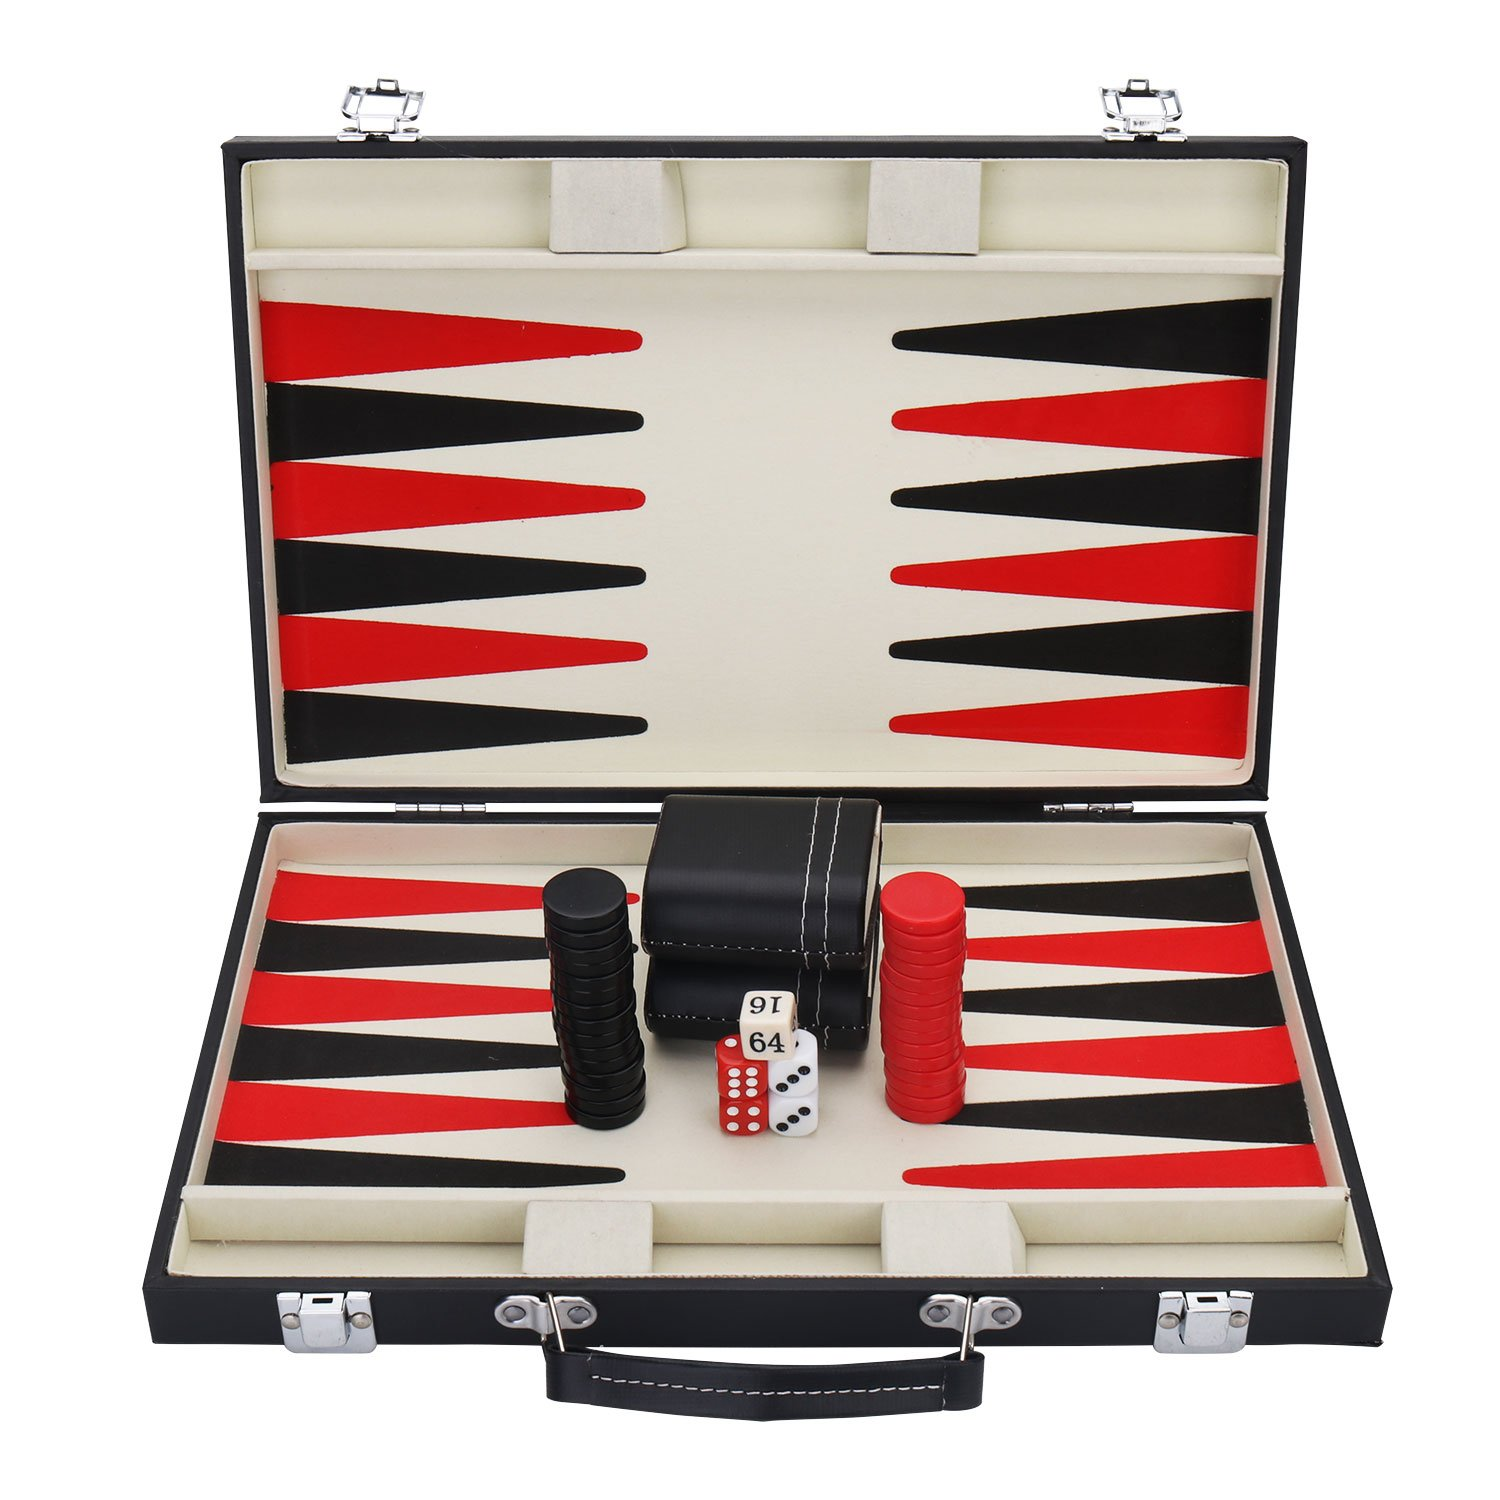 KAILE Backgammon Set with Travel Leatherette Carrying Case for Kids and Adults Black and Red Backgammon Set with Travel Leatherette Carrying Case for Kids and Adult by KAILE